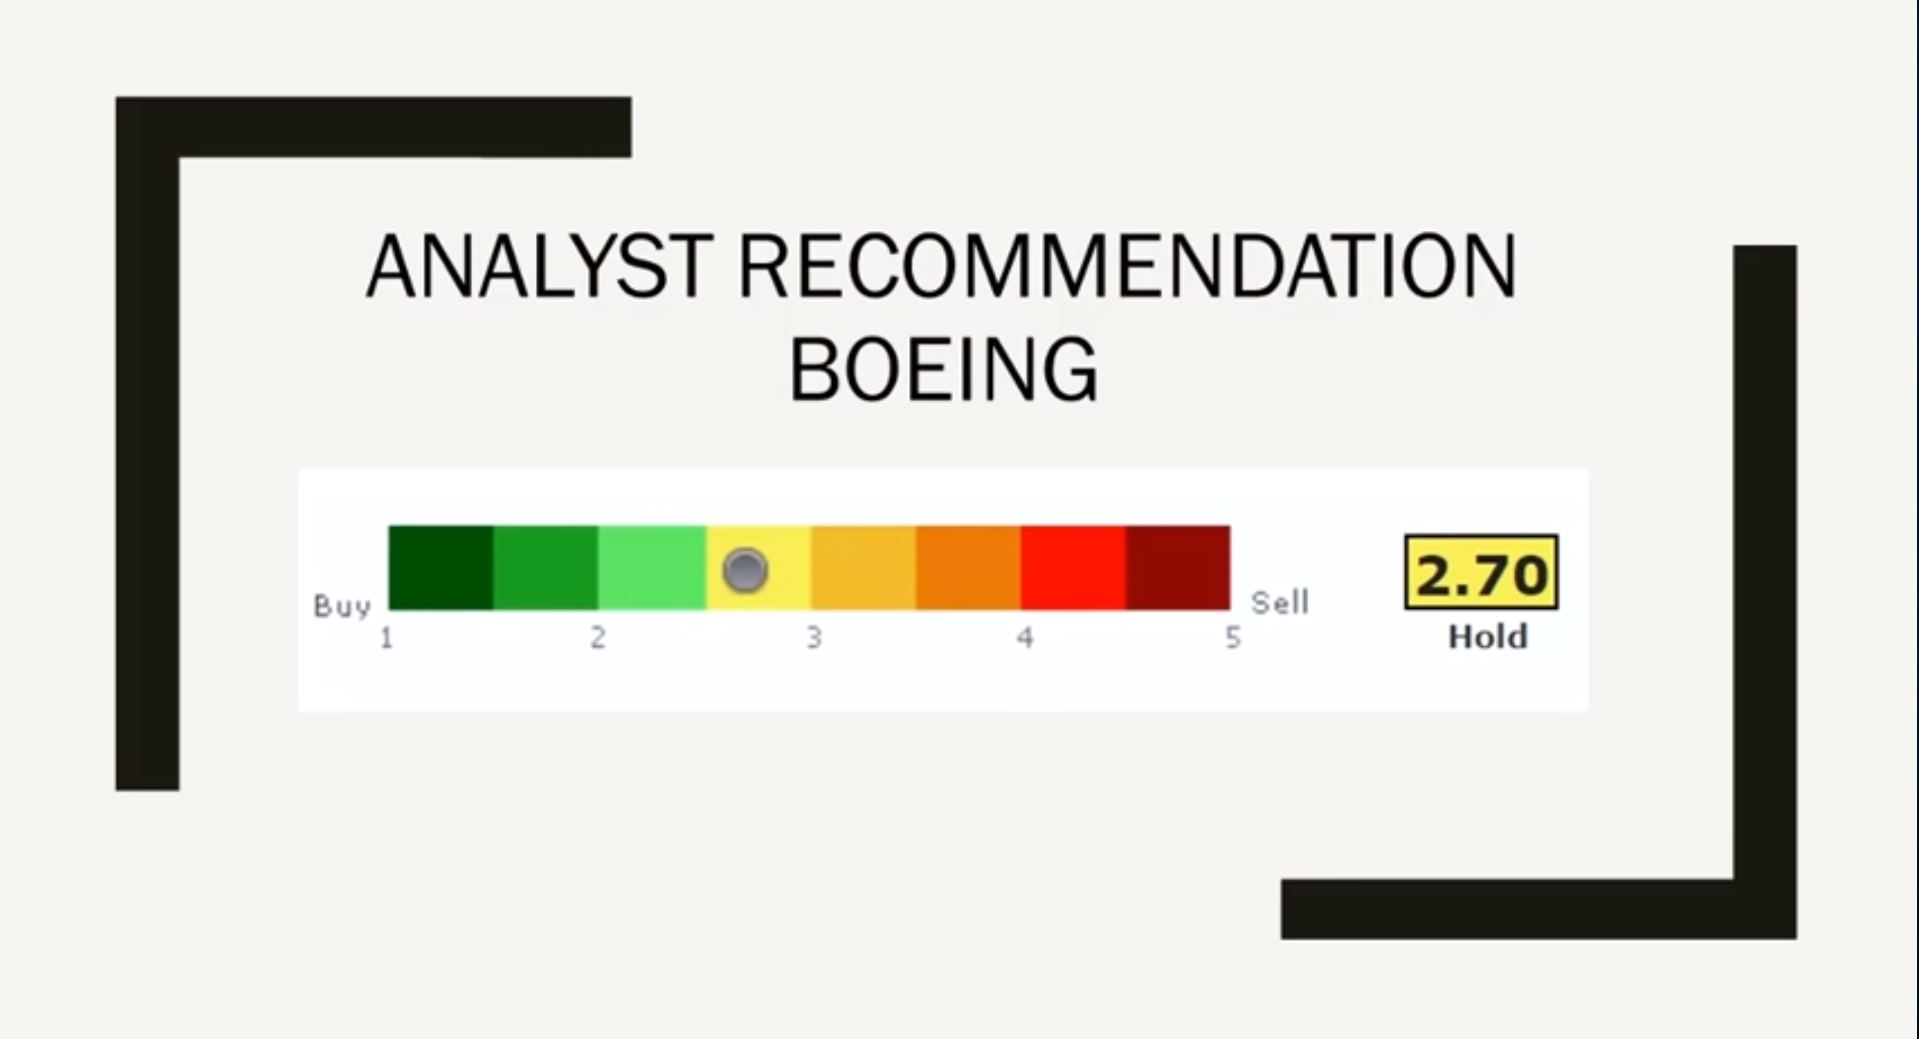 Boeing analyst recommendations